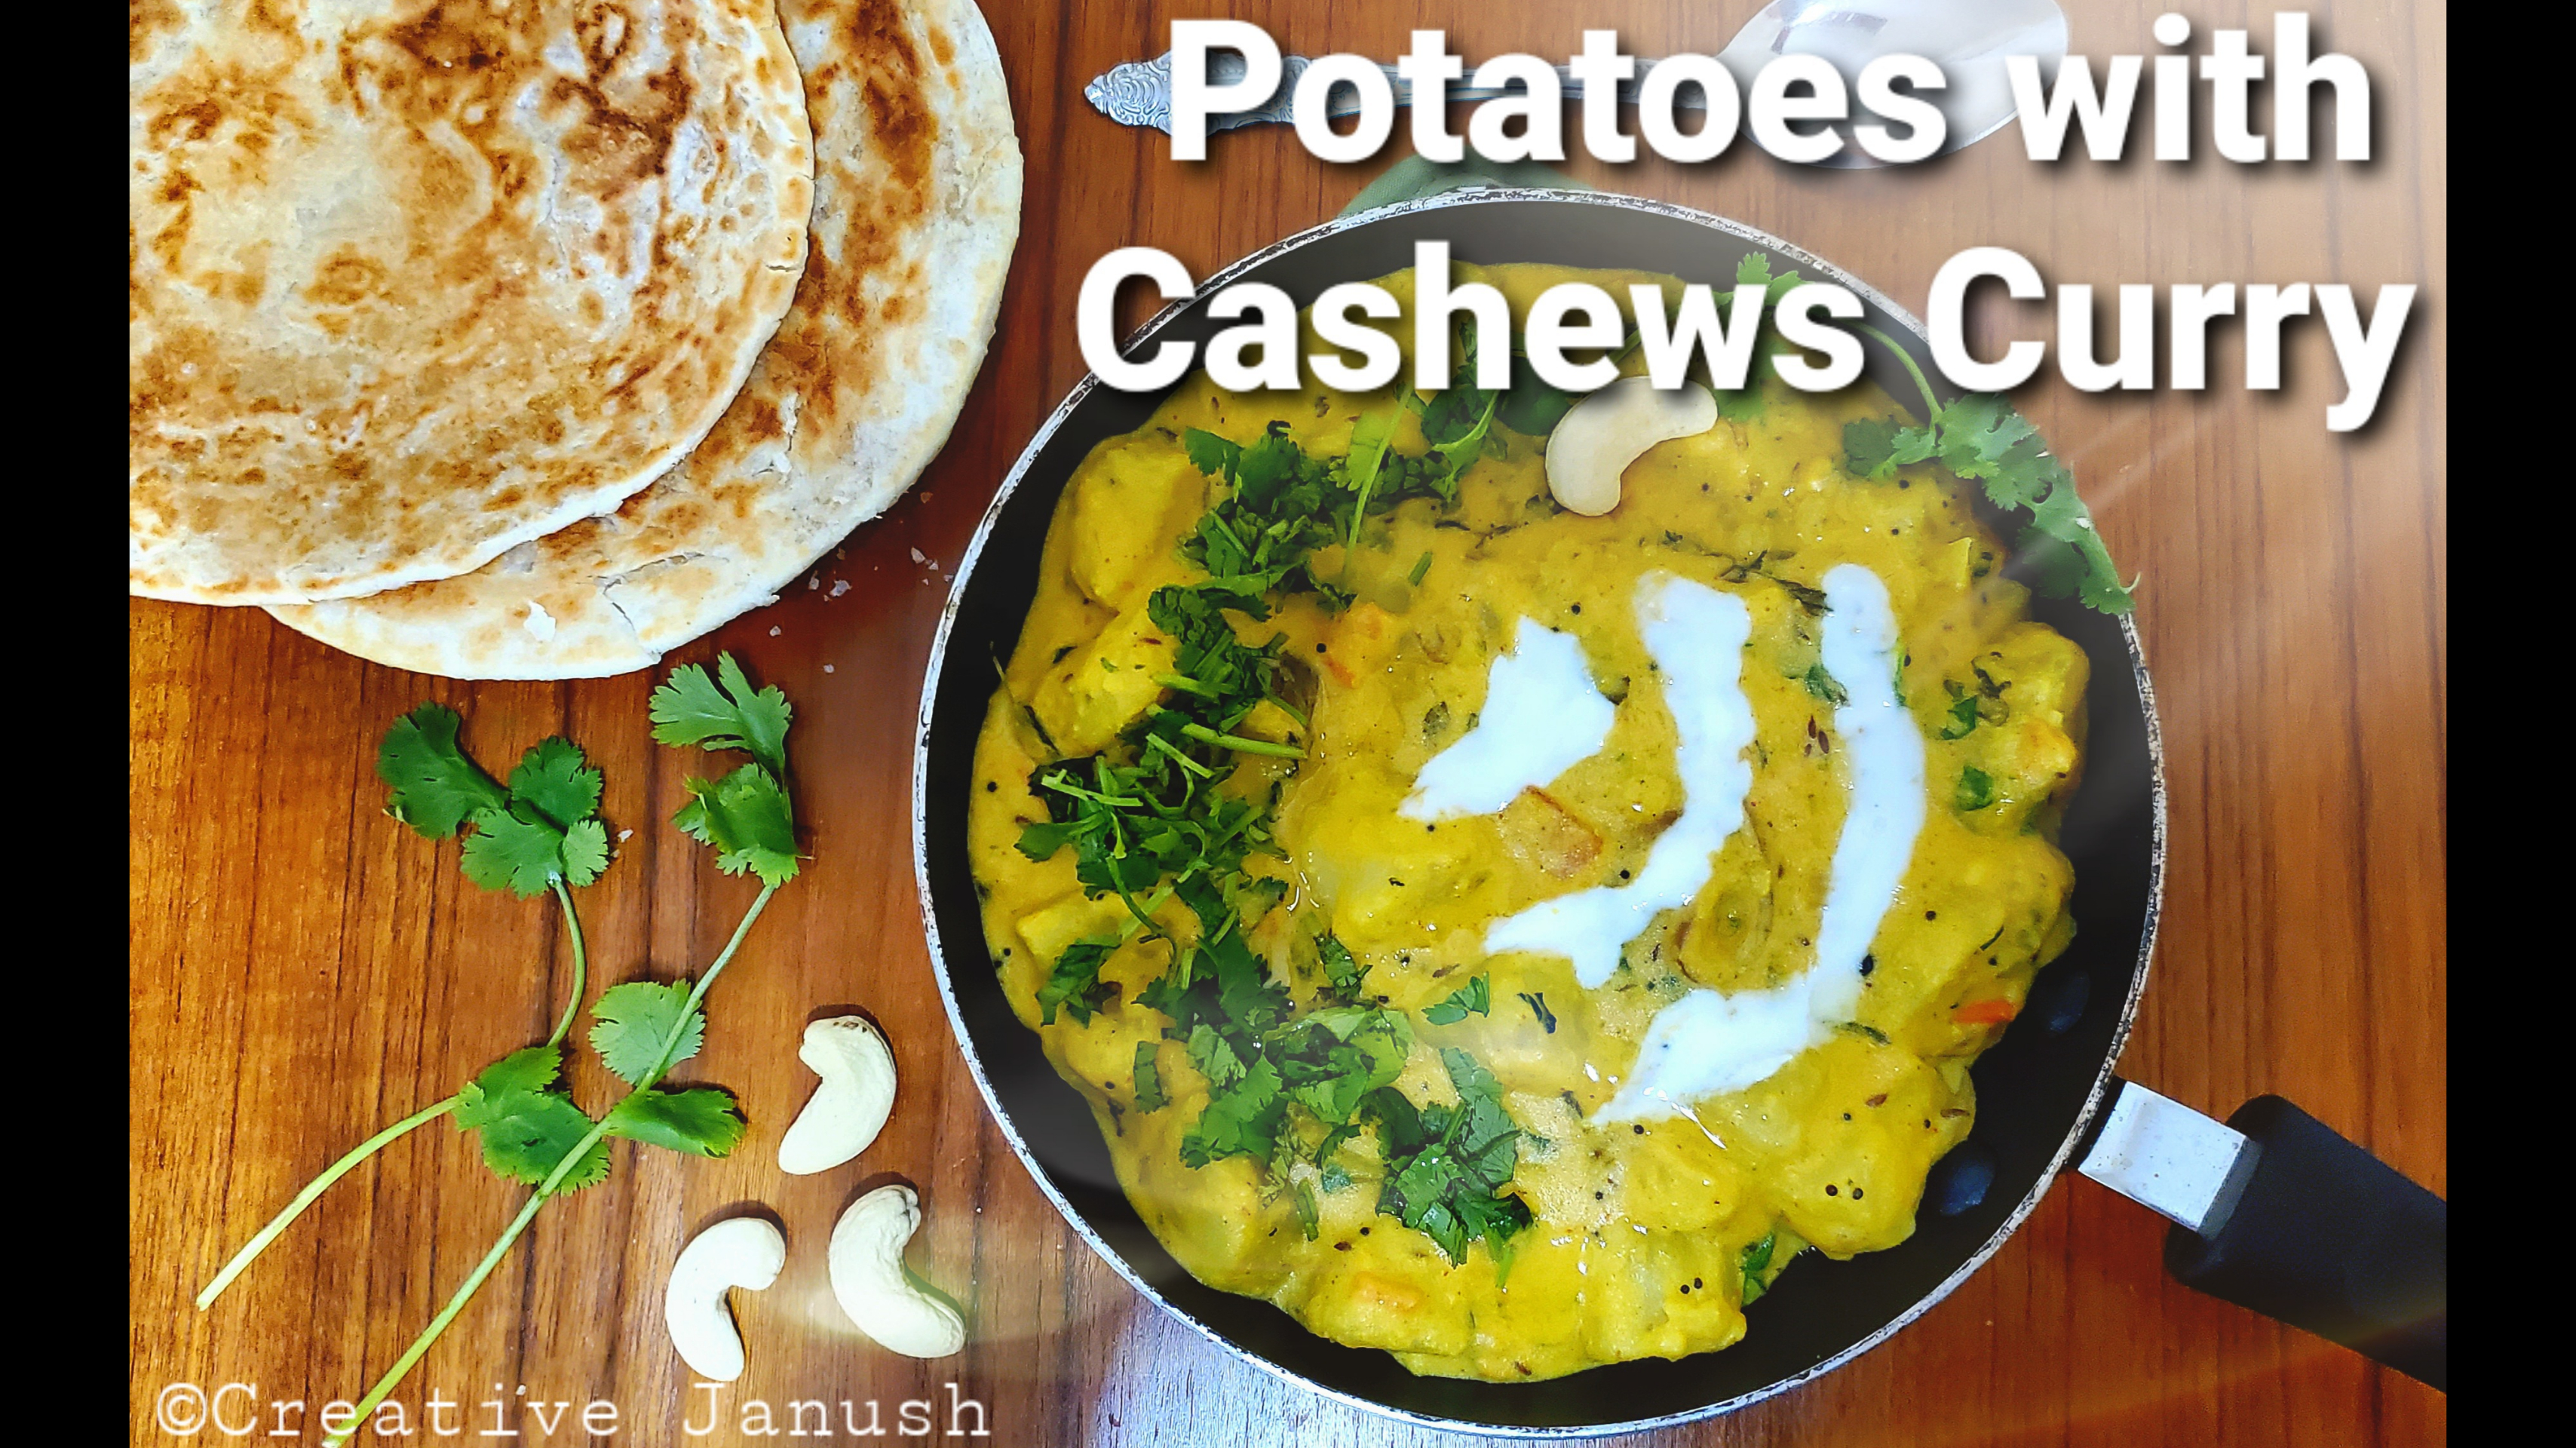 Potatoes with Cashew Curry